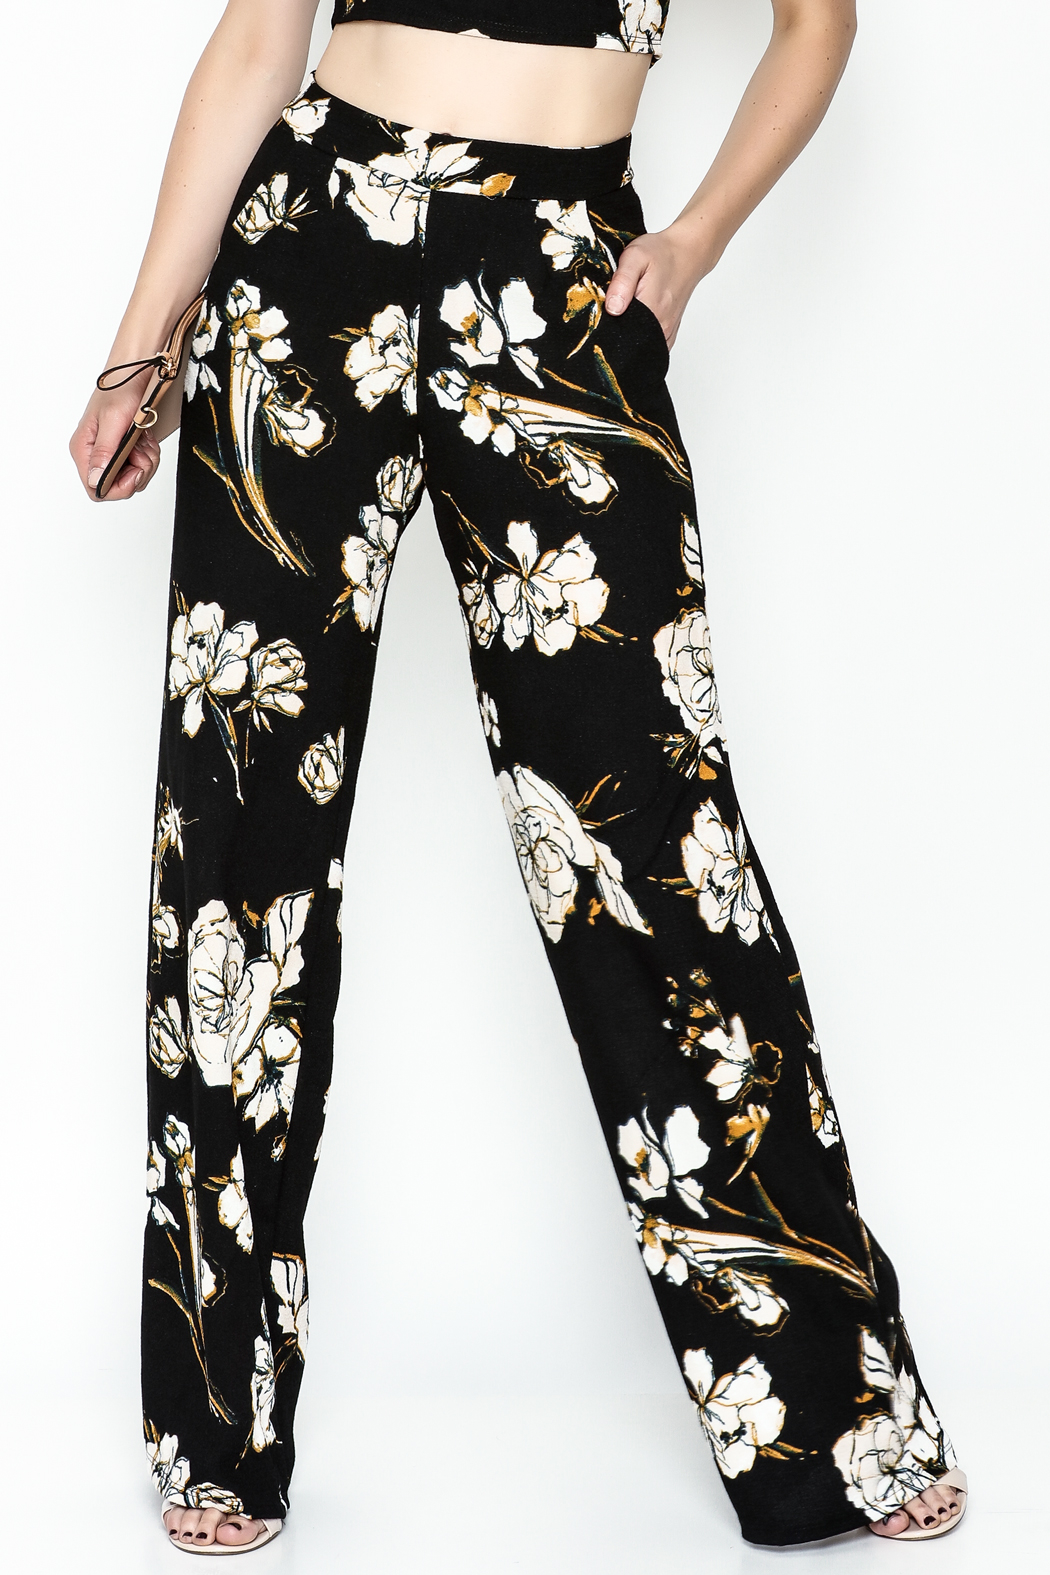 Polly & Esther Black Floral Trouser - Main Image